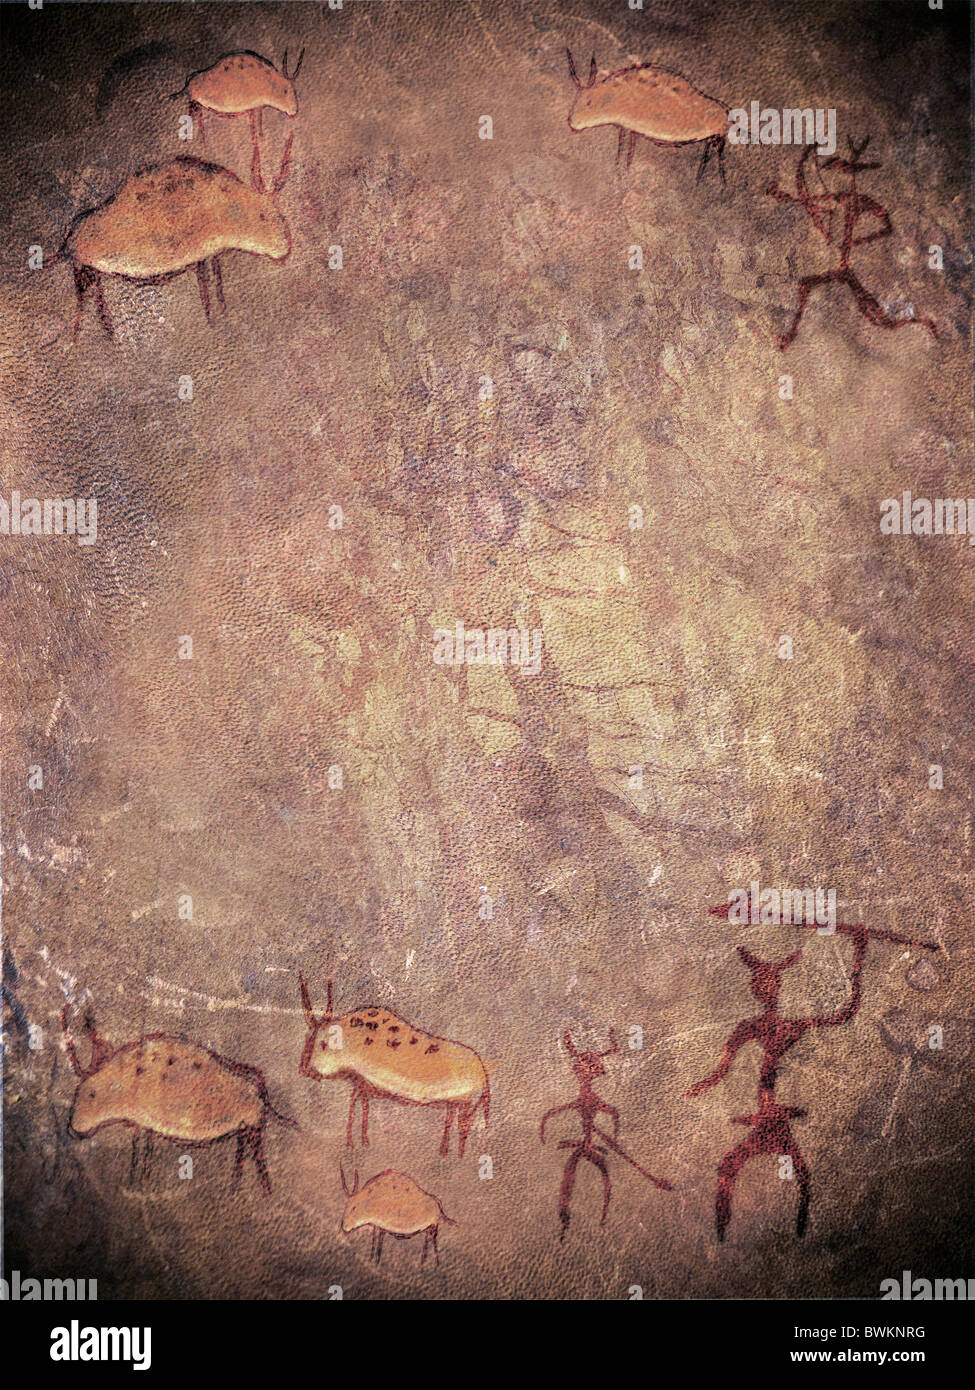 prehistoric paint with hunters and animals - Stock Image